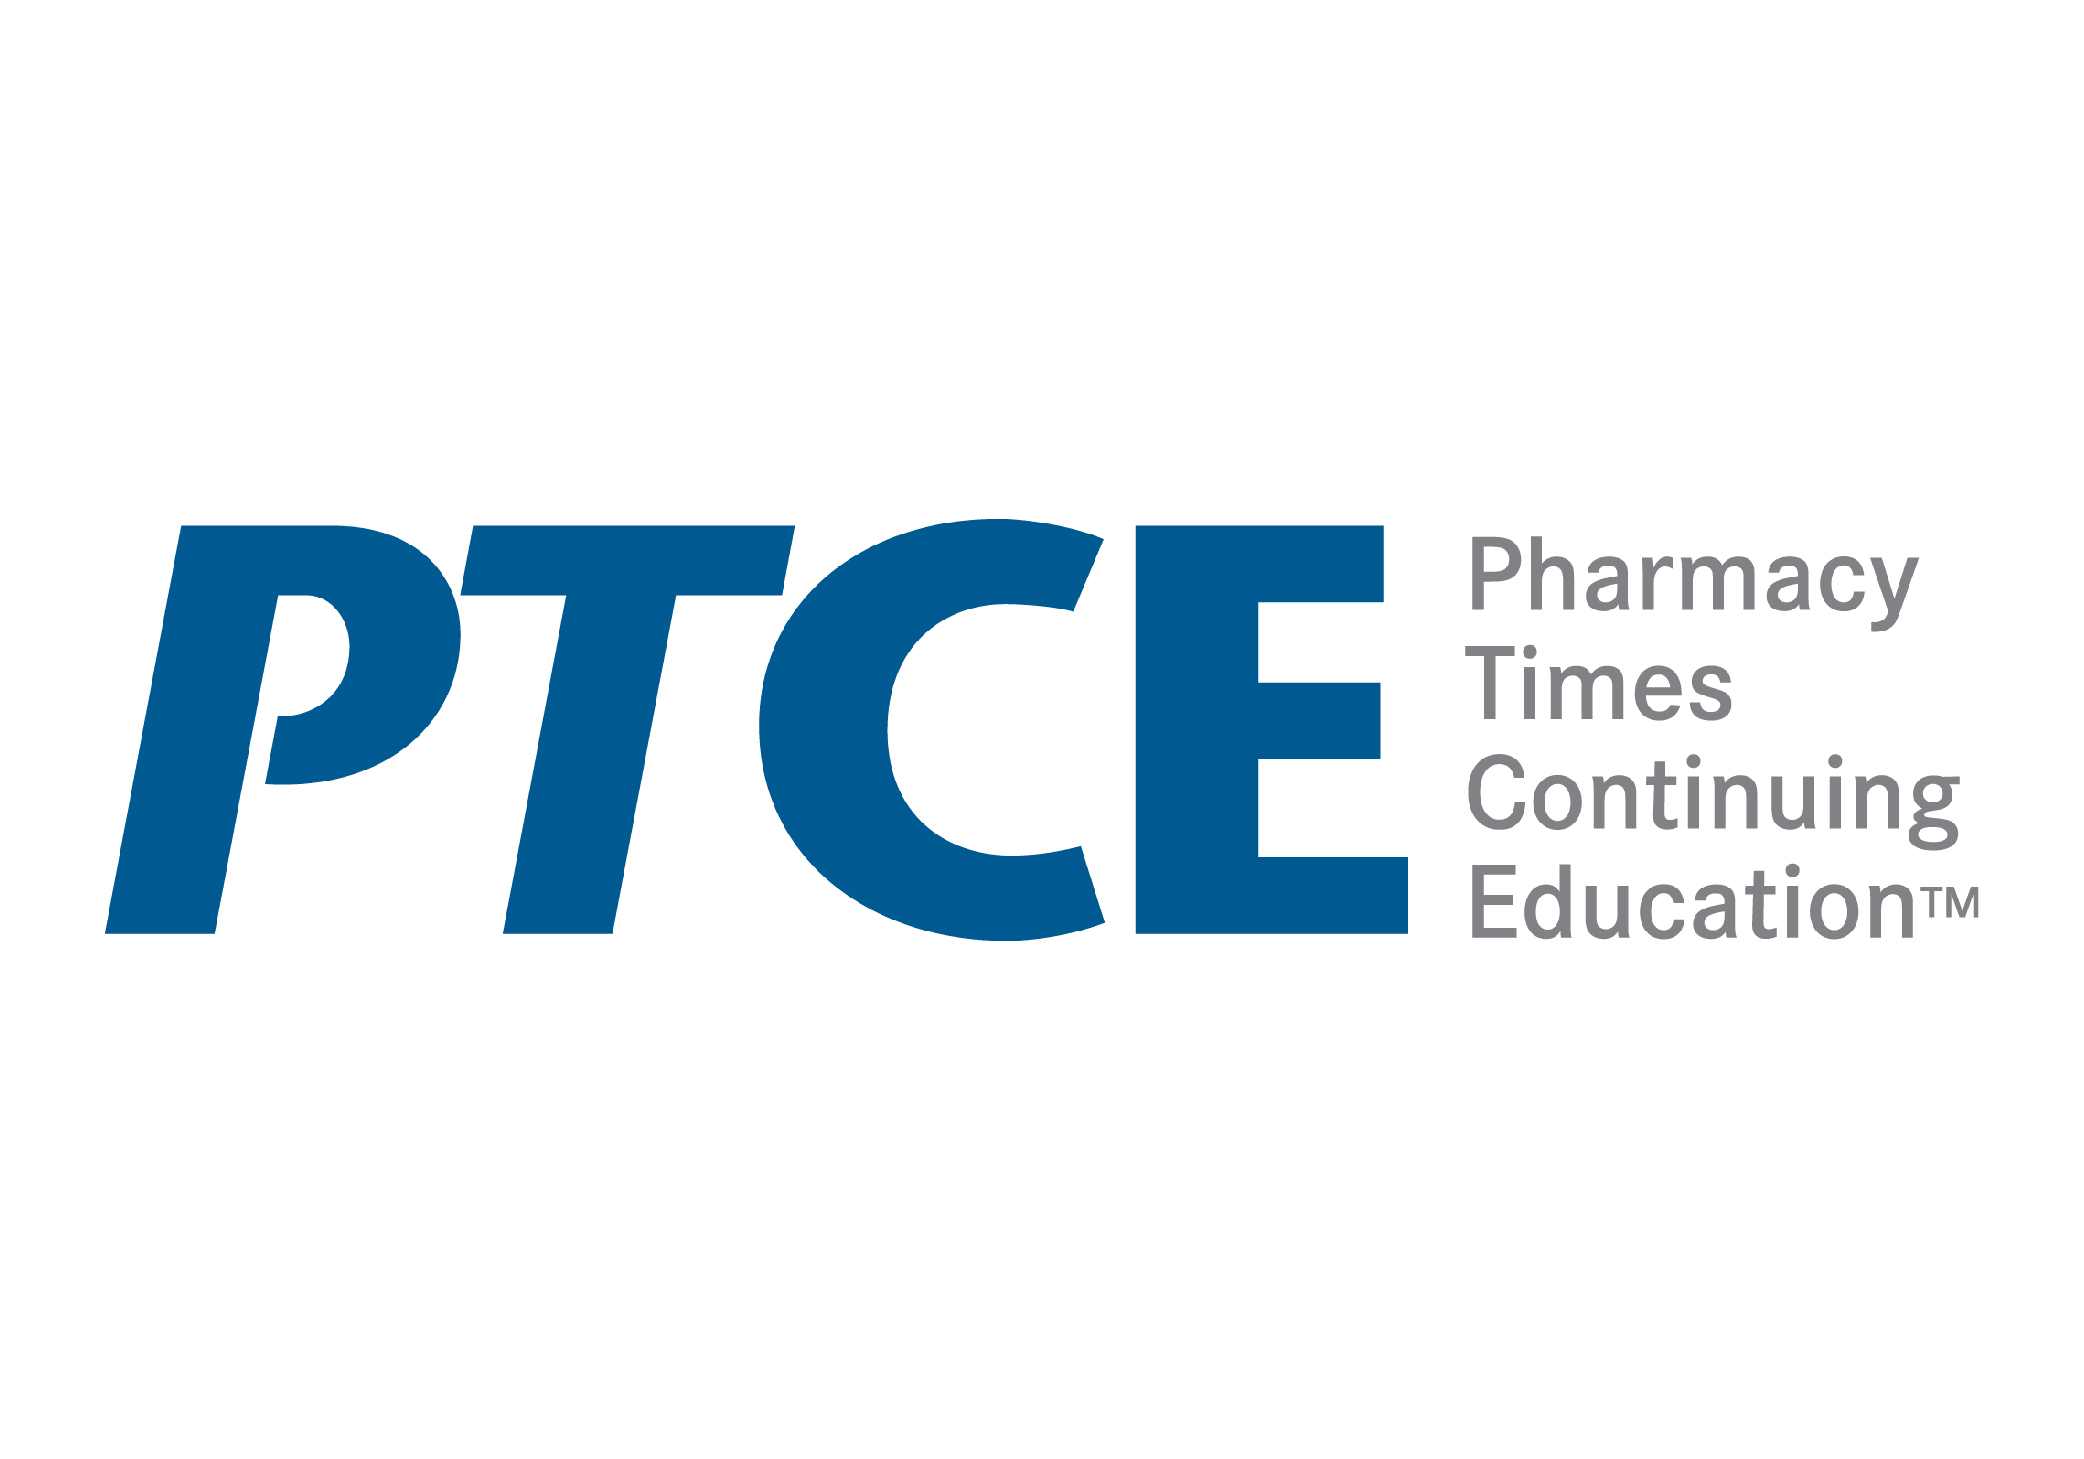 Pharmacy Times Continuing Education